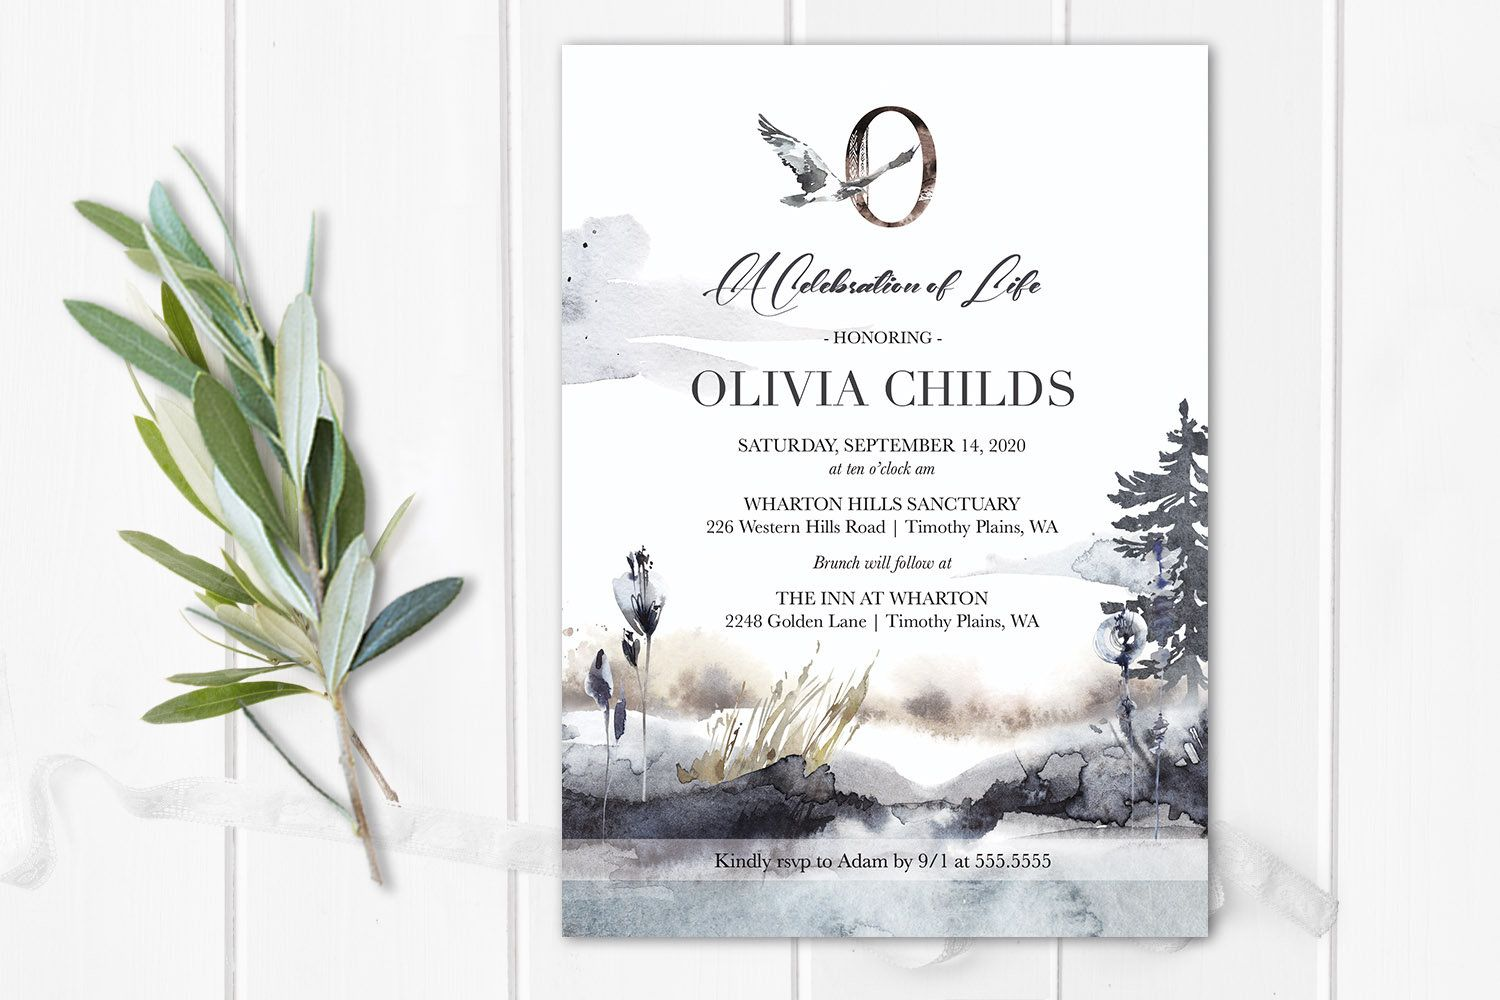 Celebration Of Life Invitations Funeral Announcement Memorial Etsy In 2021 Memorial Service Invitation Celebration Of Life Invitations Celebration of life announcement template